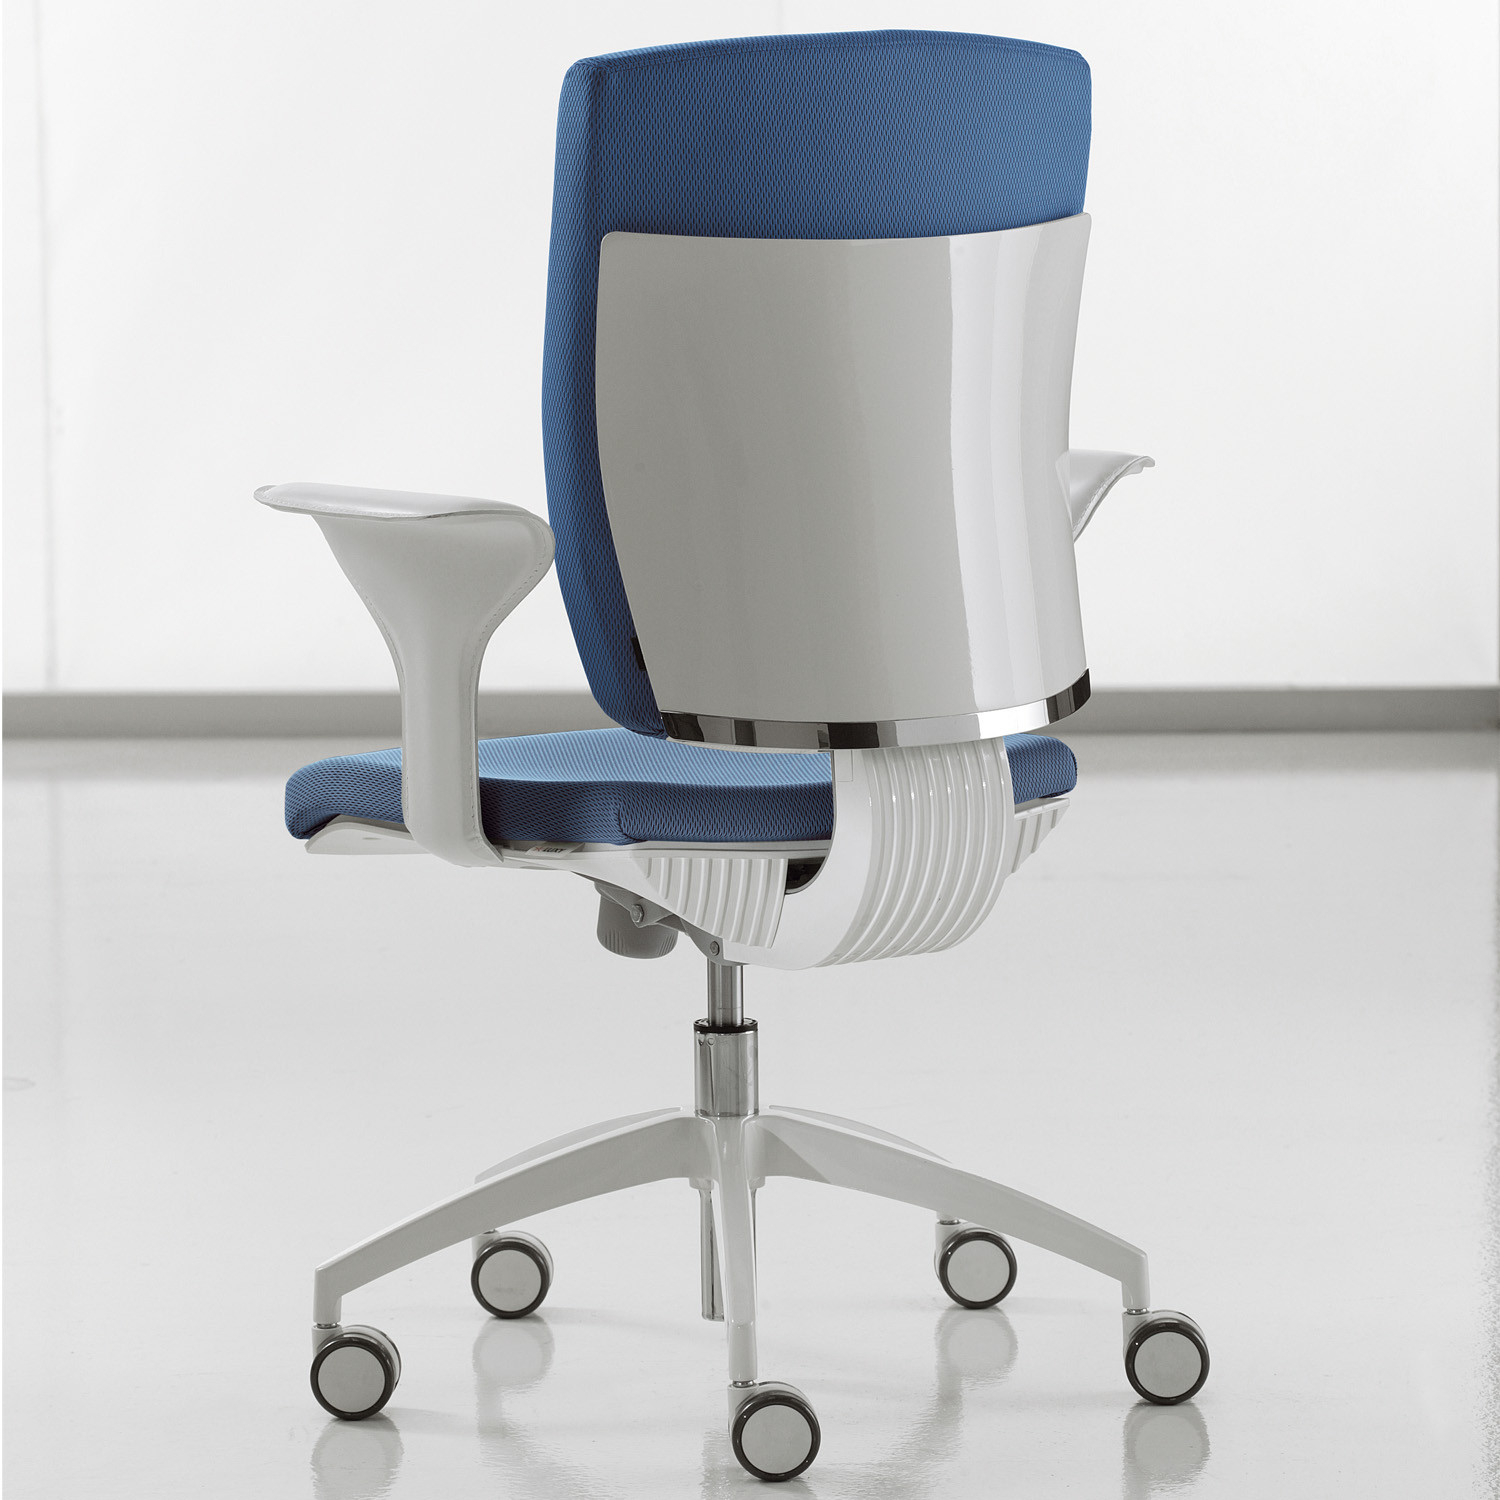 Pixel Ergonomic Desk Chair Rear View